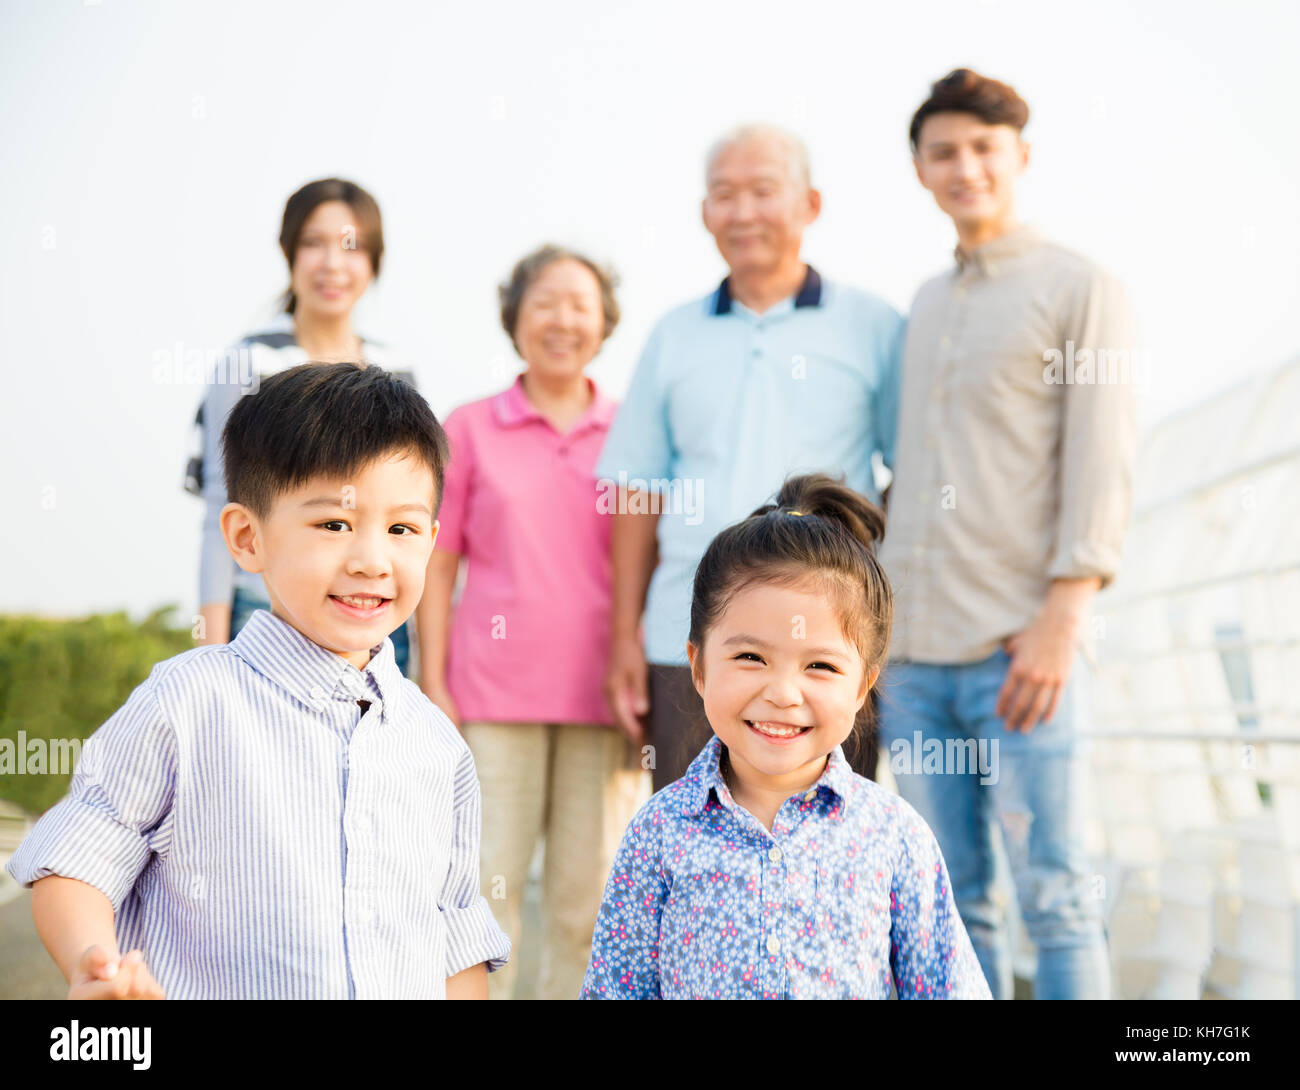 Multi-generation family having fun together outdoors - Stock Image